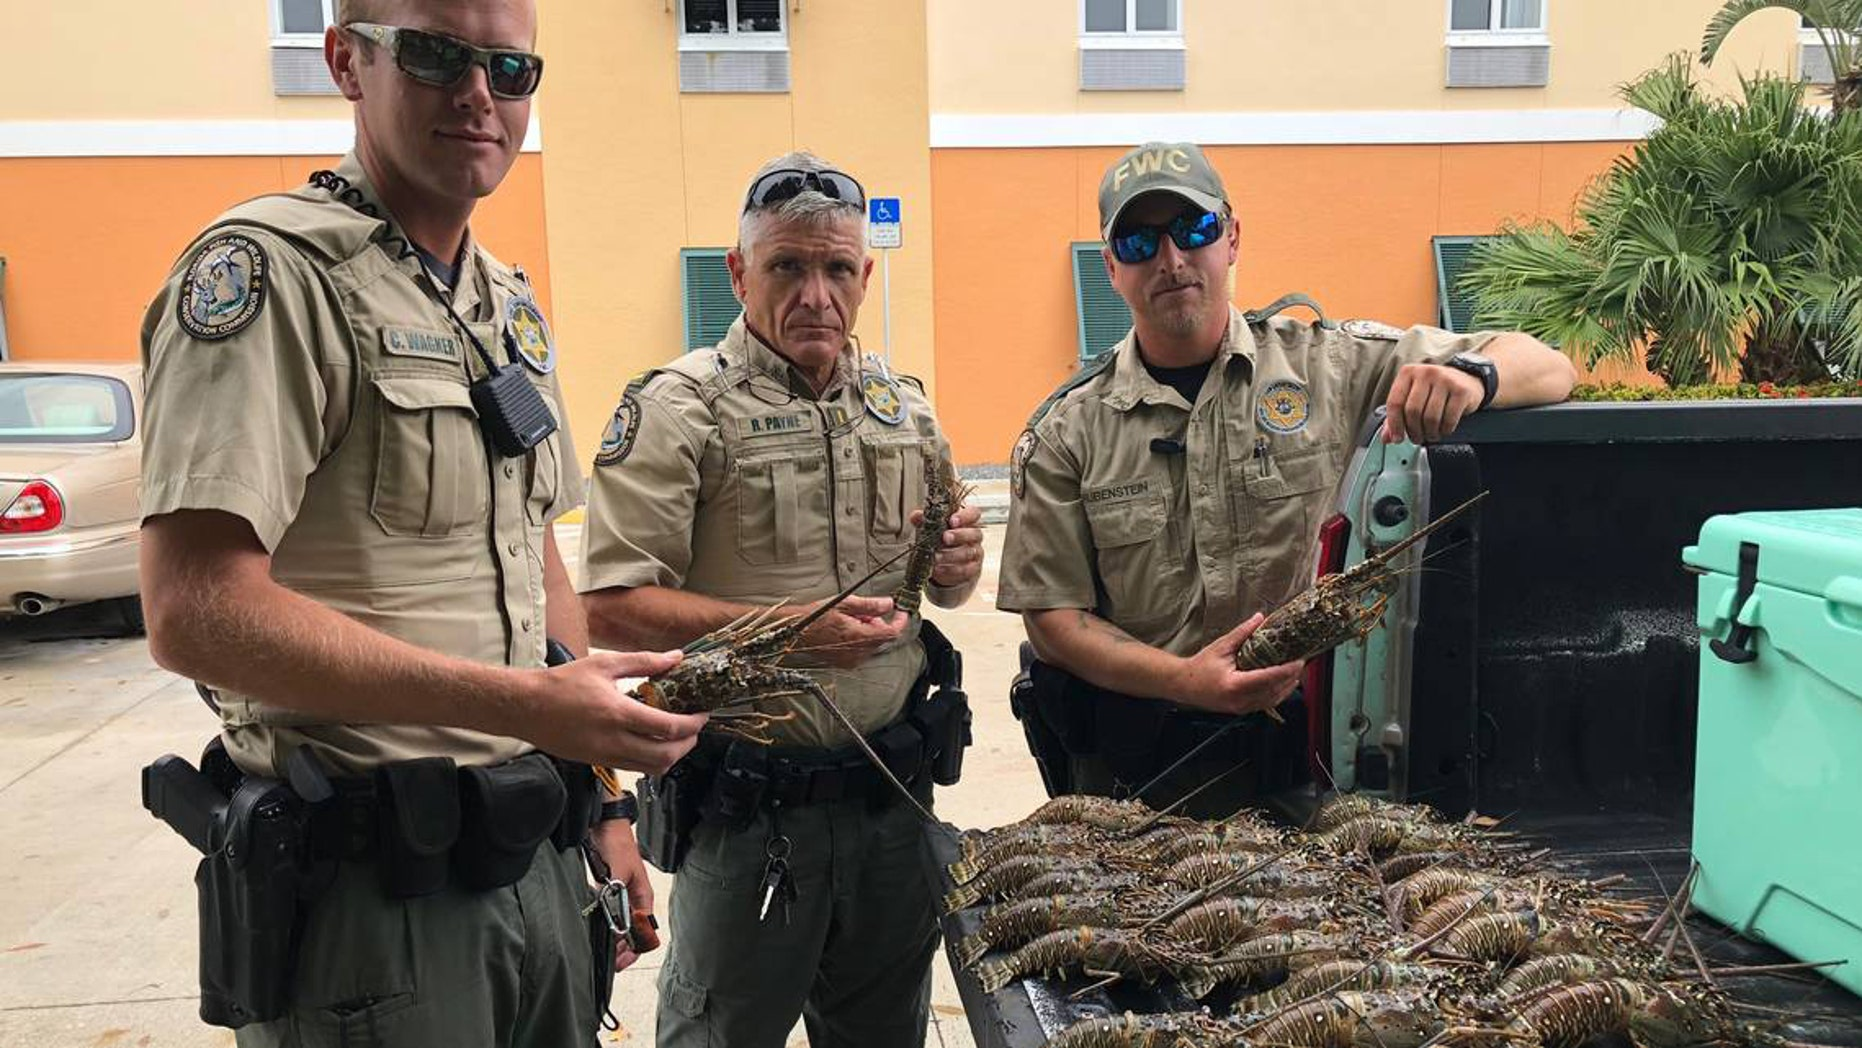 Two Florida men were caught with illegally obtained lobsters in their truck and hotel room.